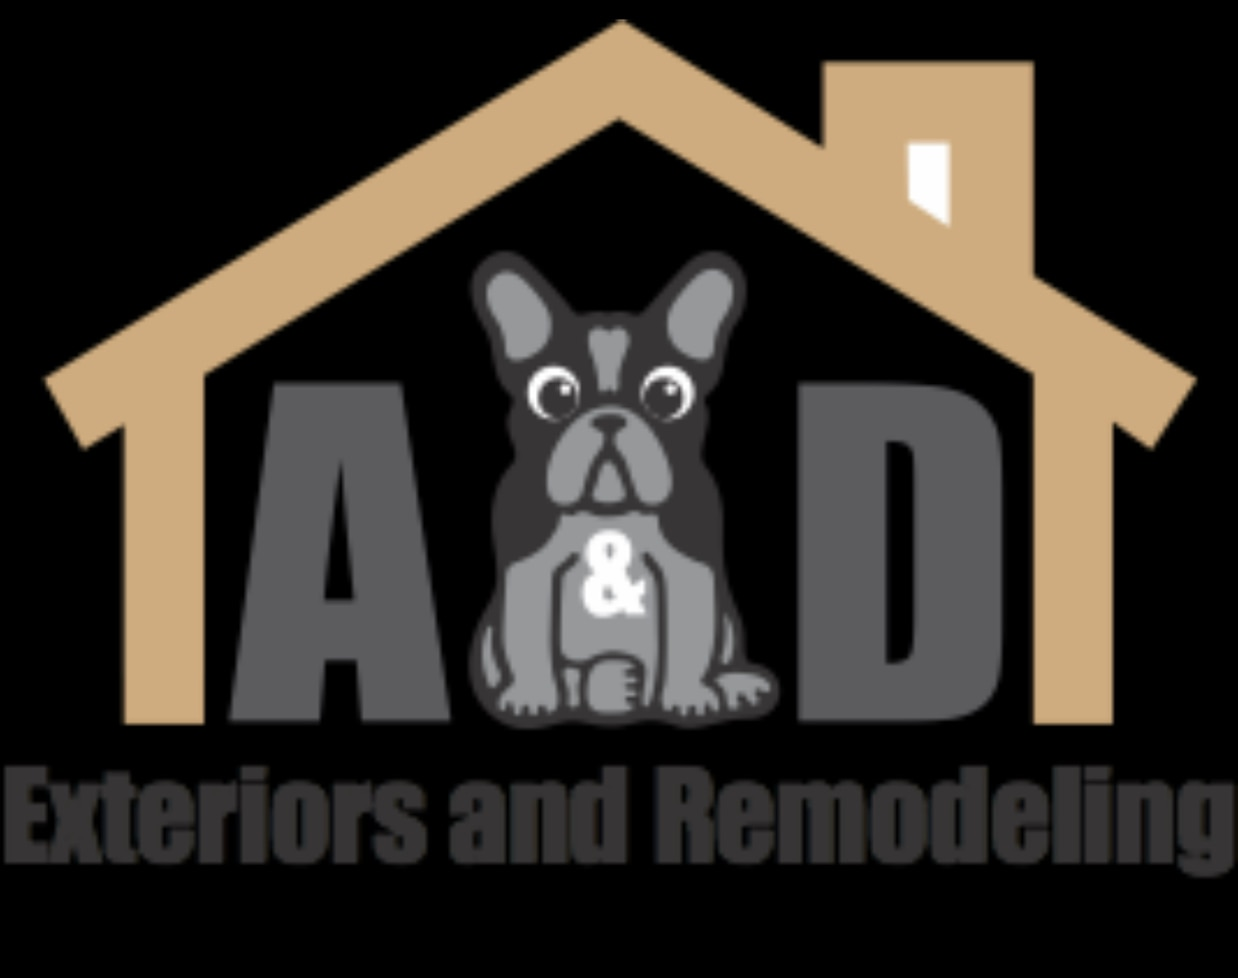 A&D Exteriors and Remodeling logo